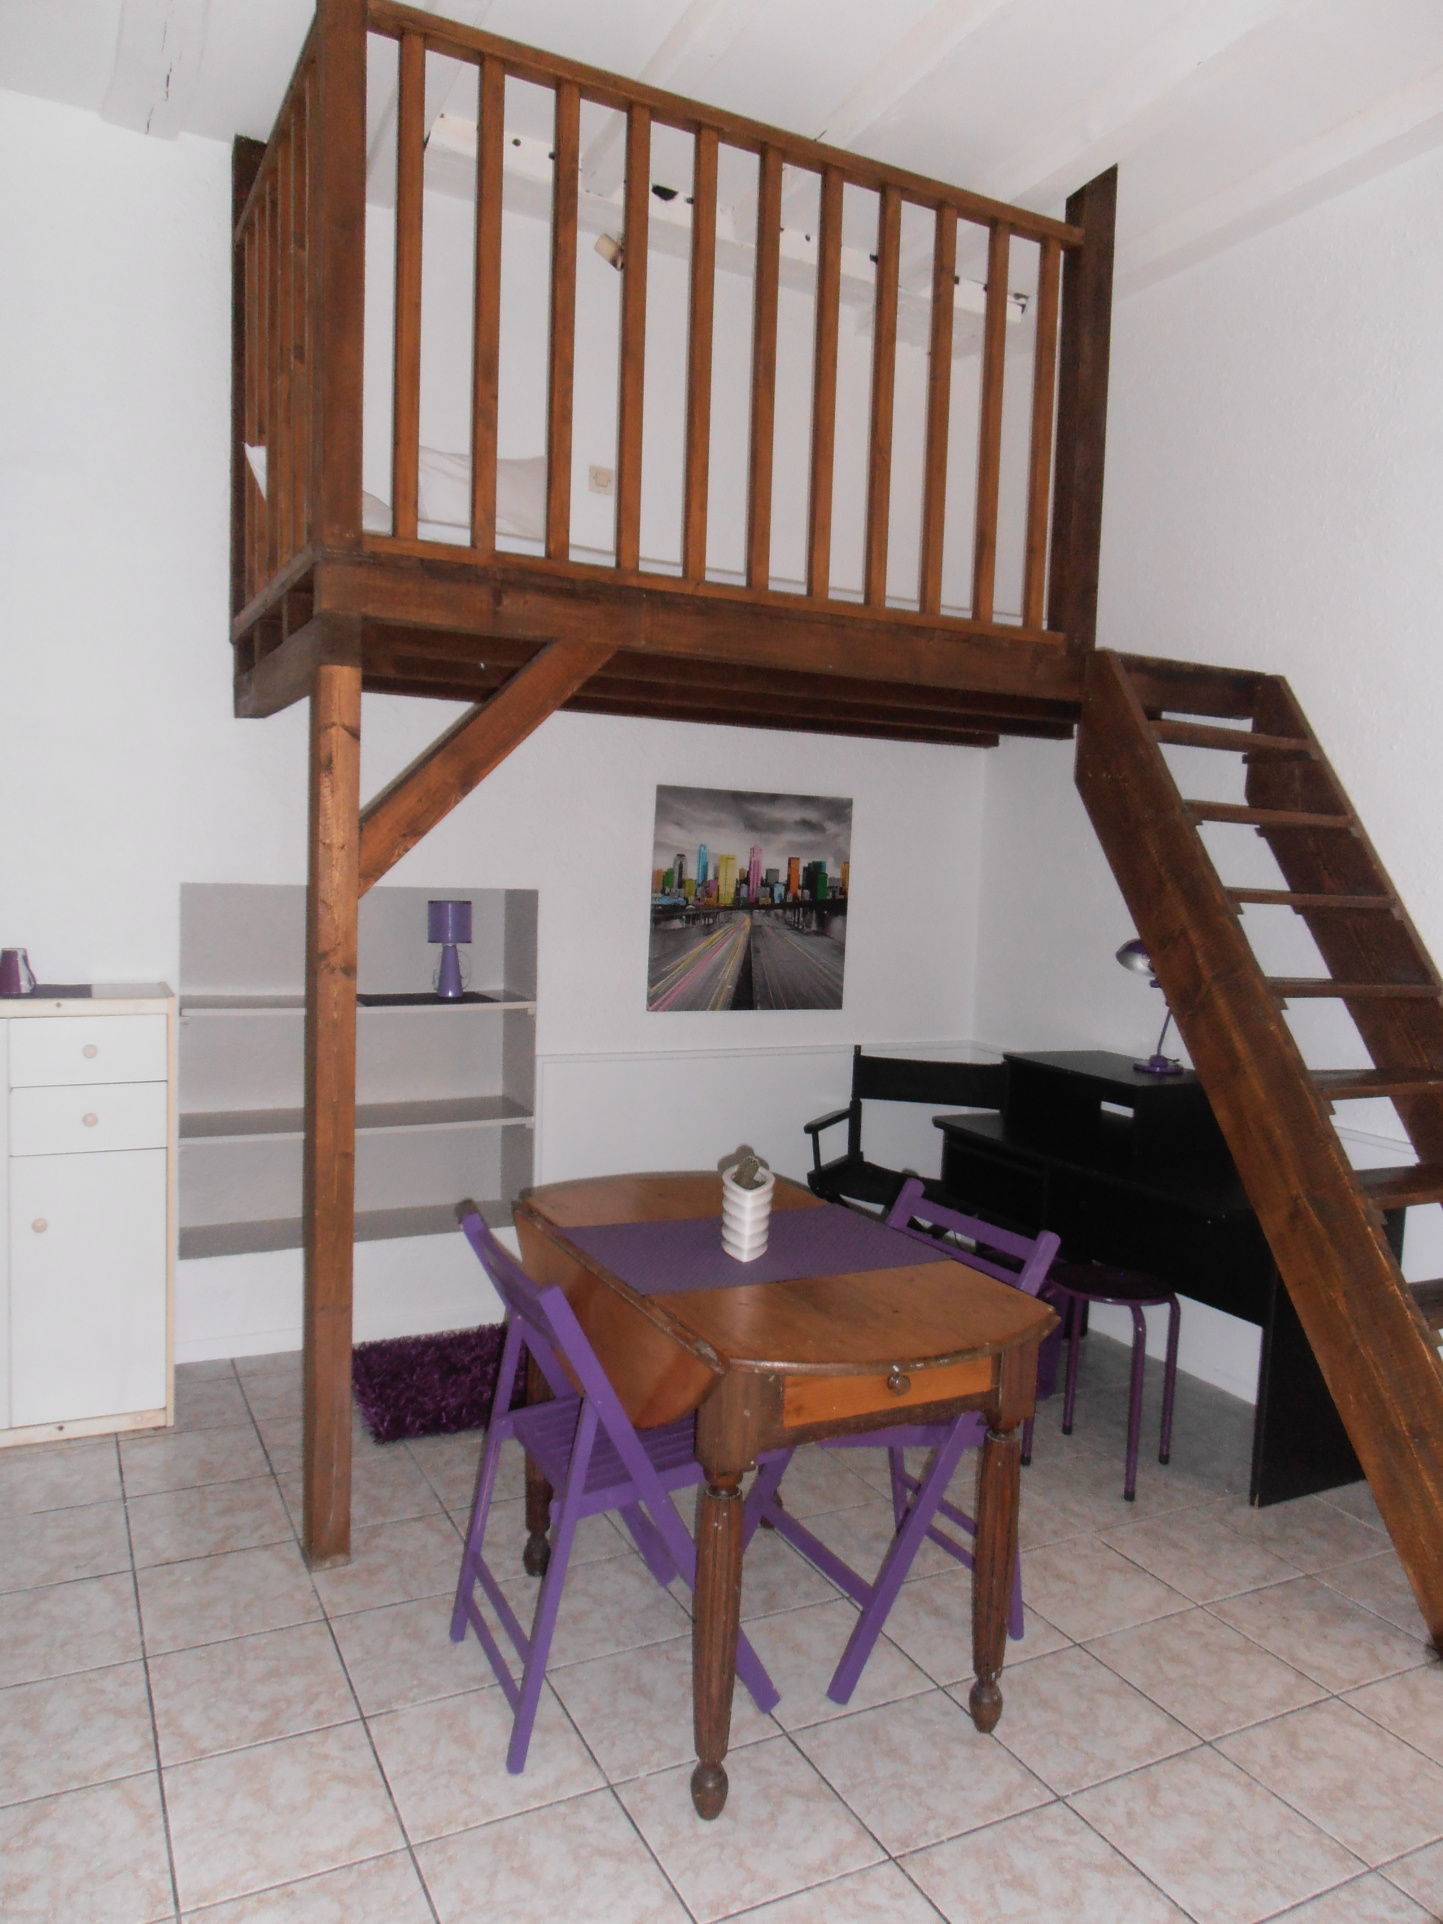 Location appartement dijon centre ville